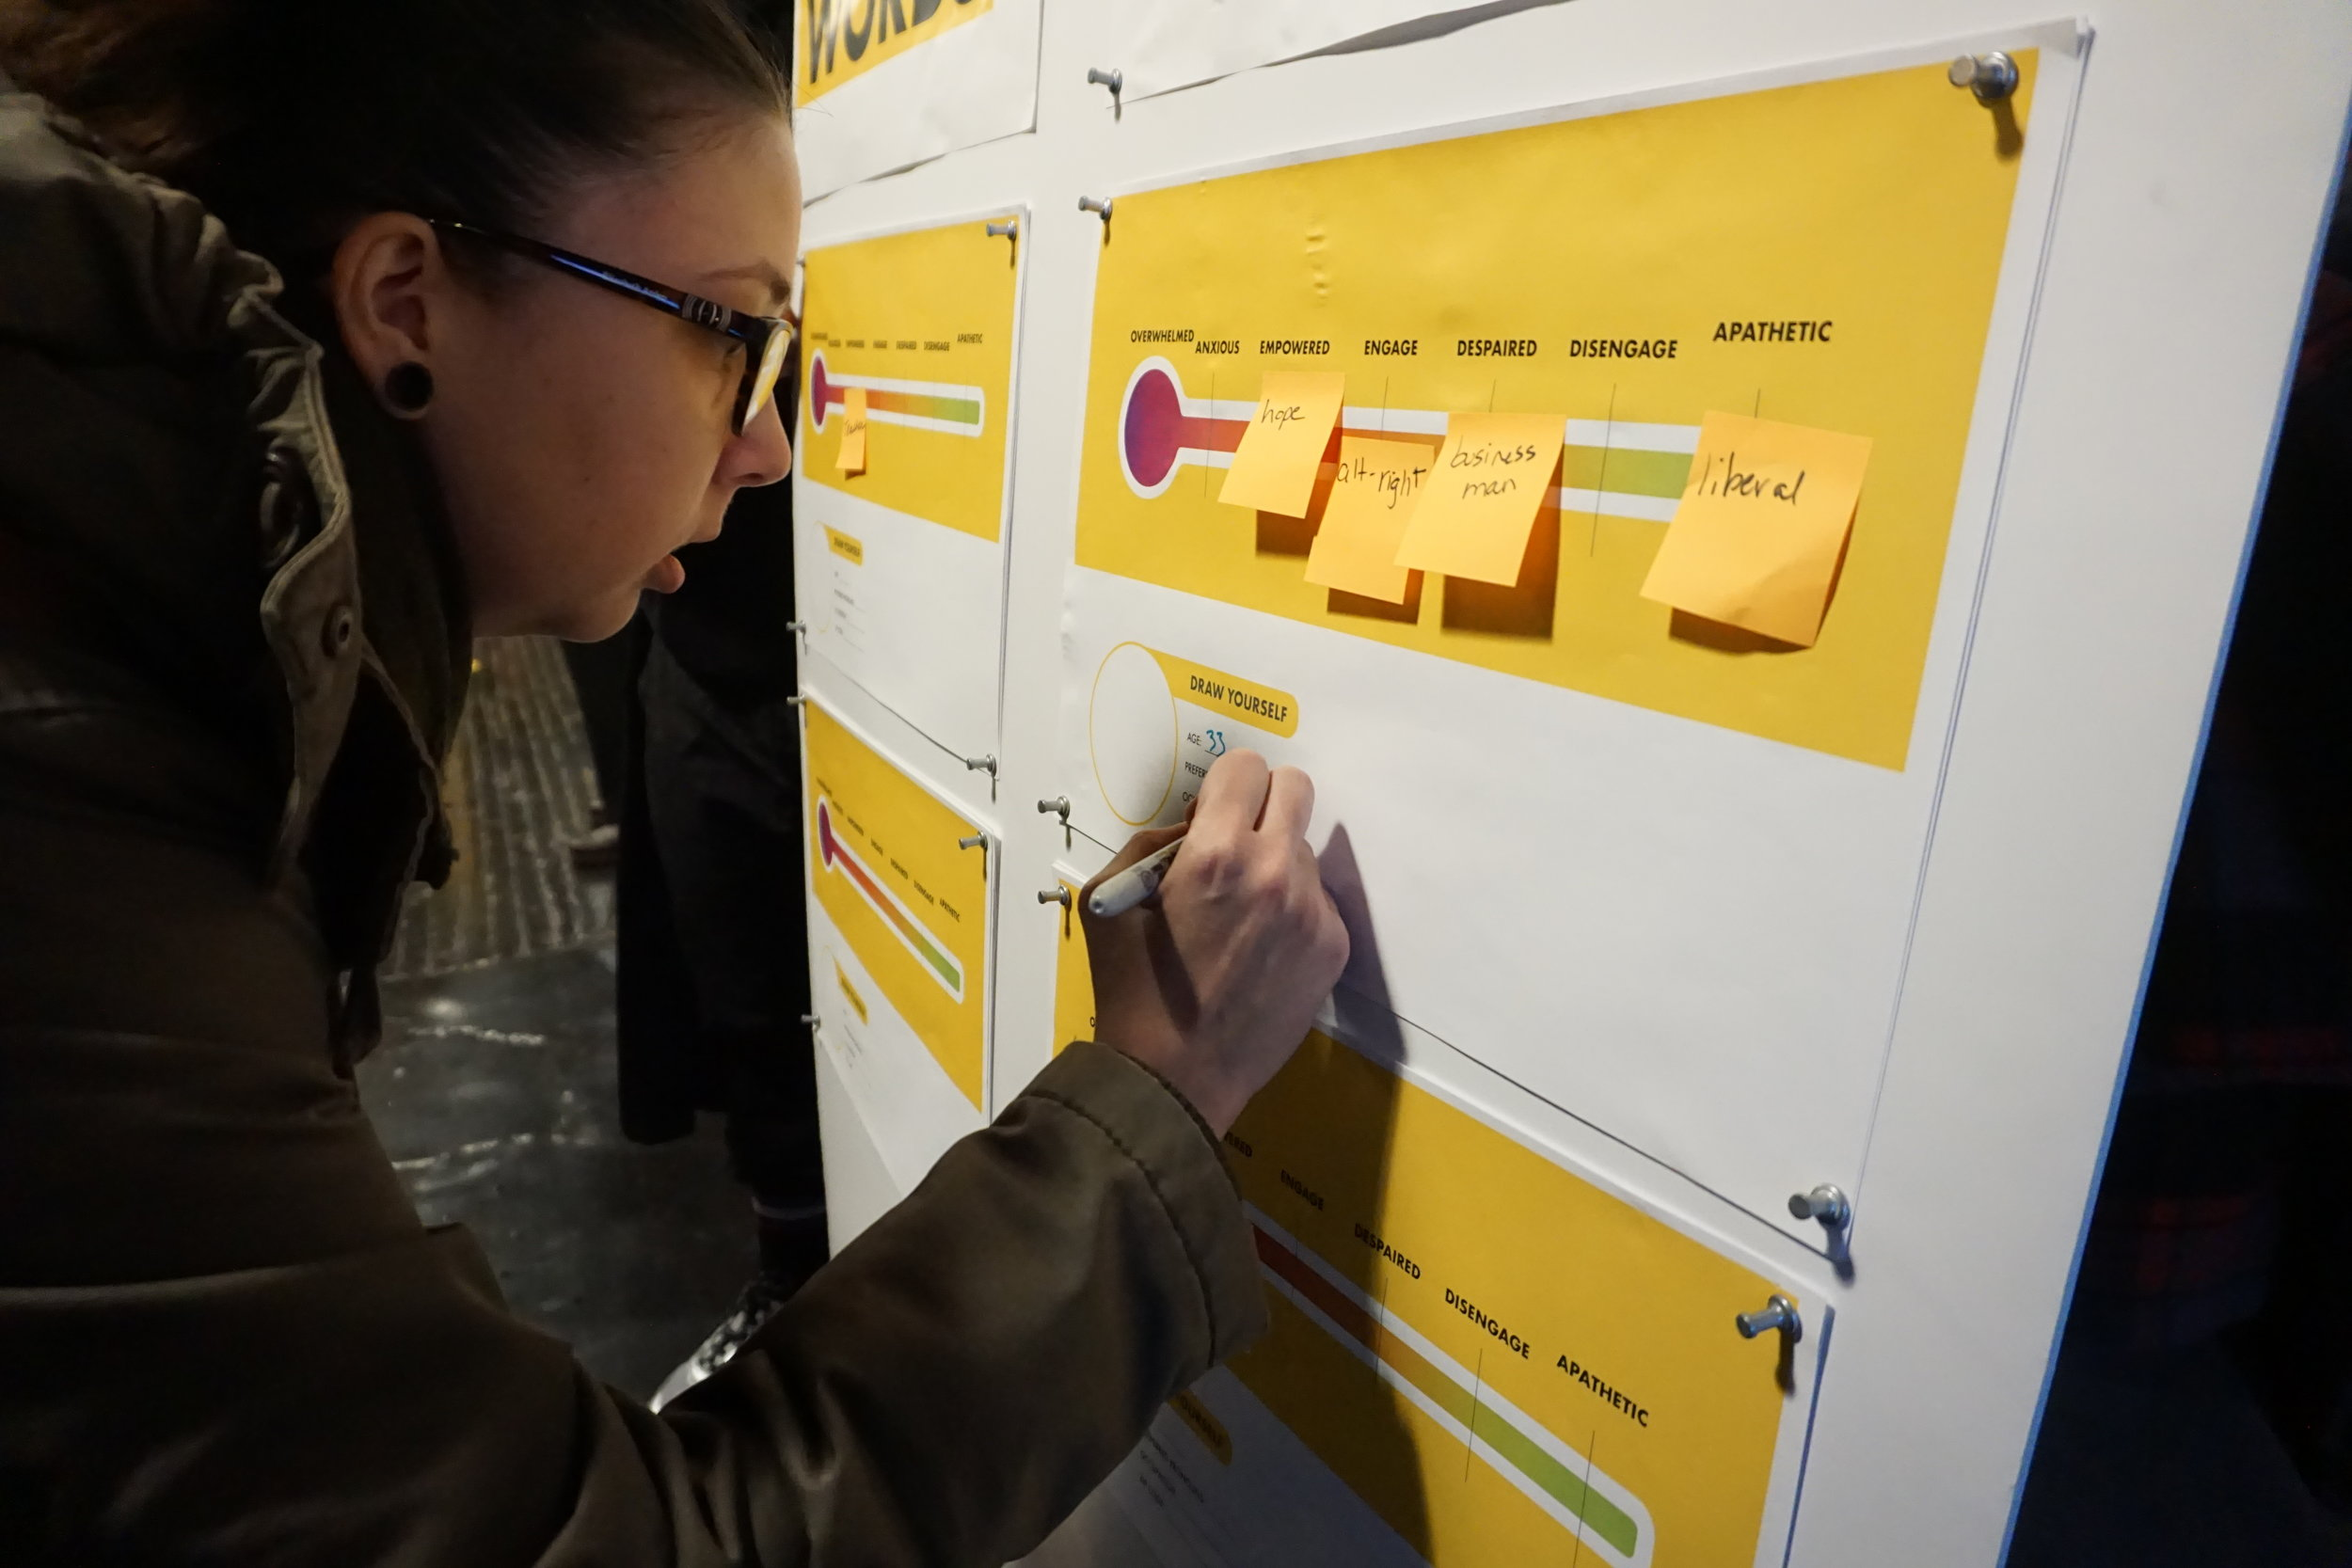 009 Participants were invited to post their trigger words on a spectrum and share some information about themselves..JPG